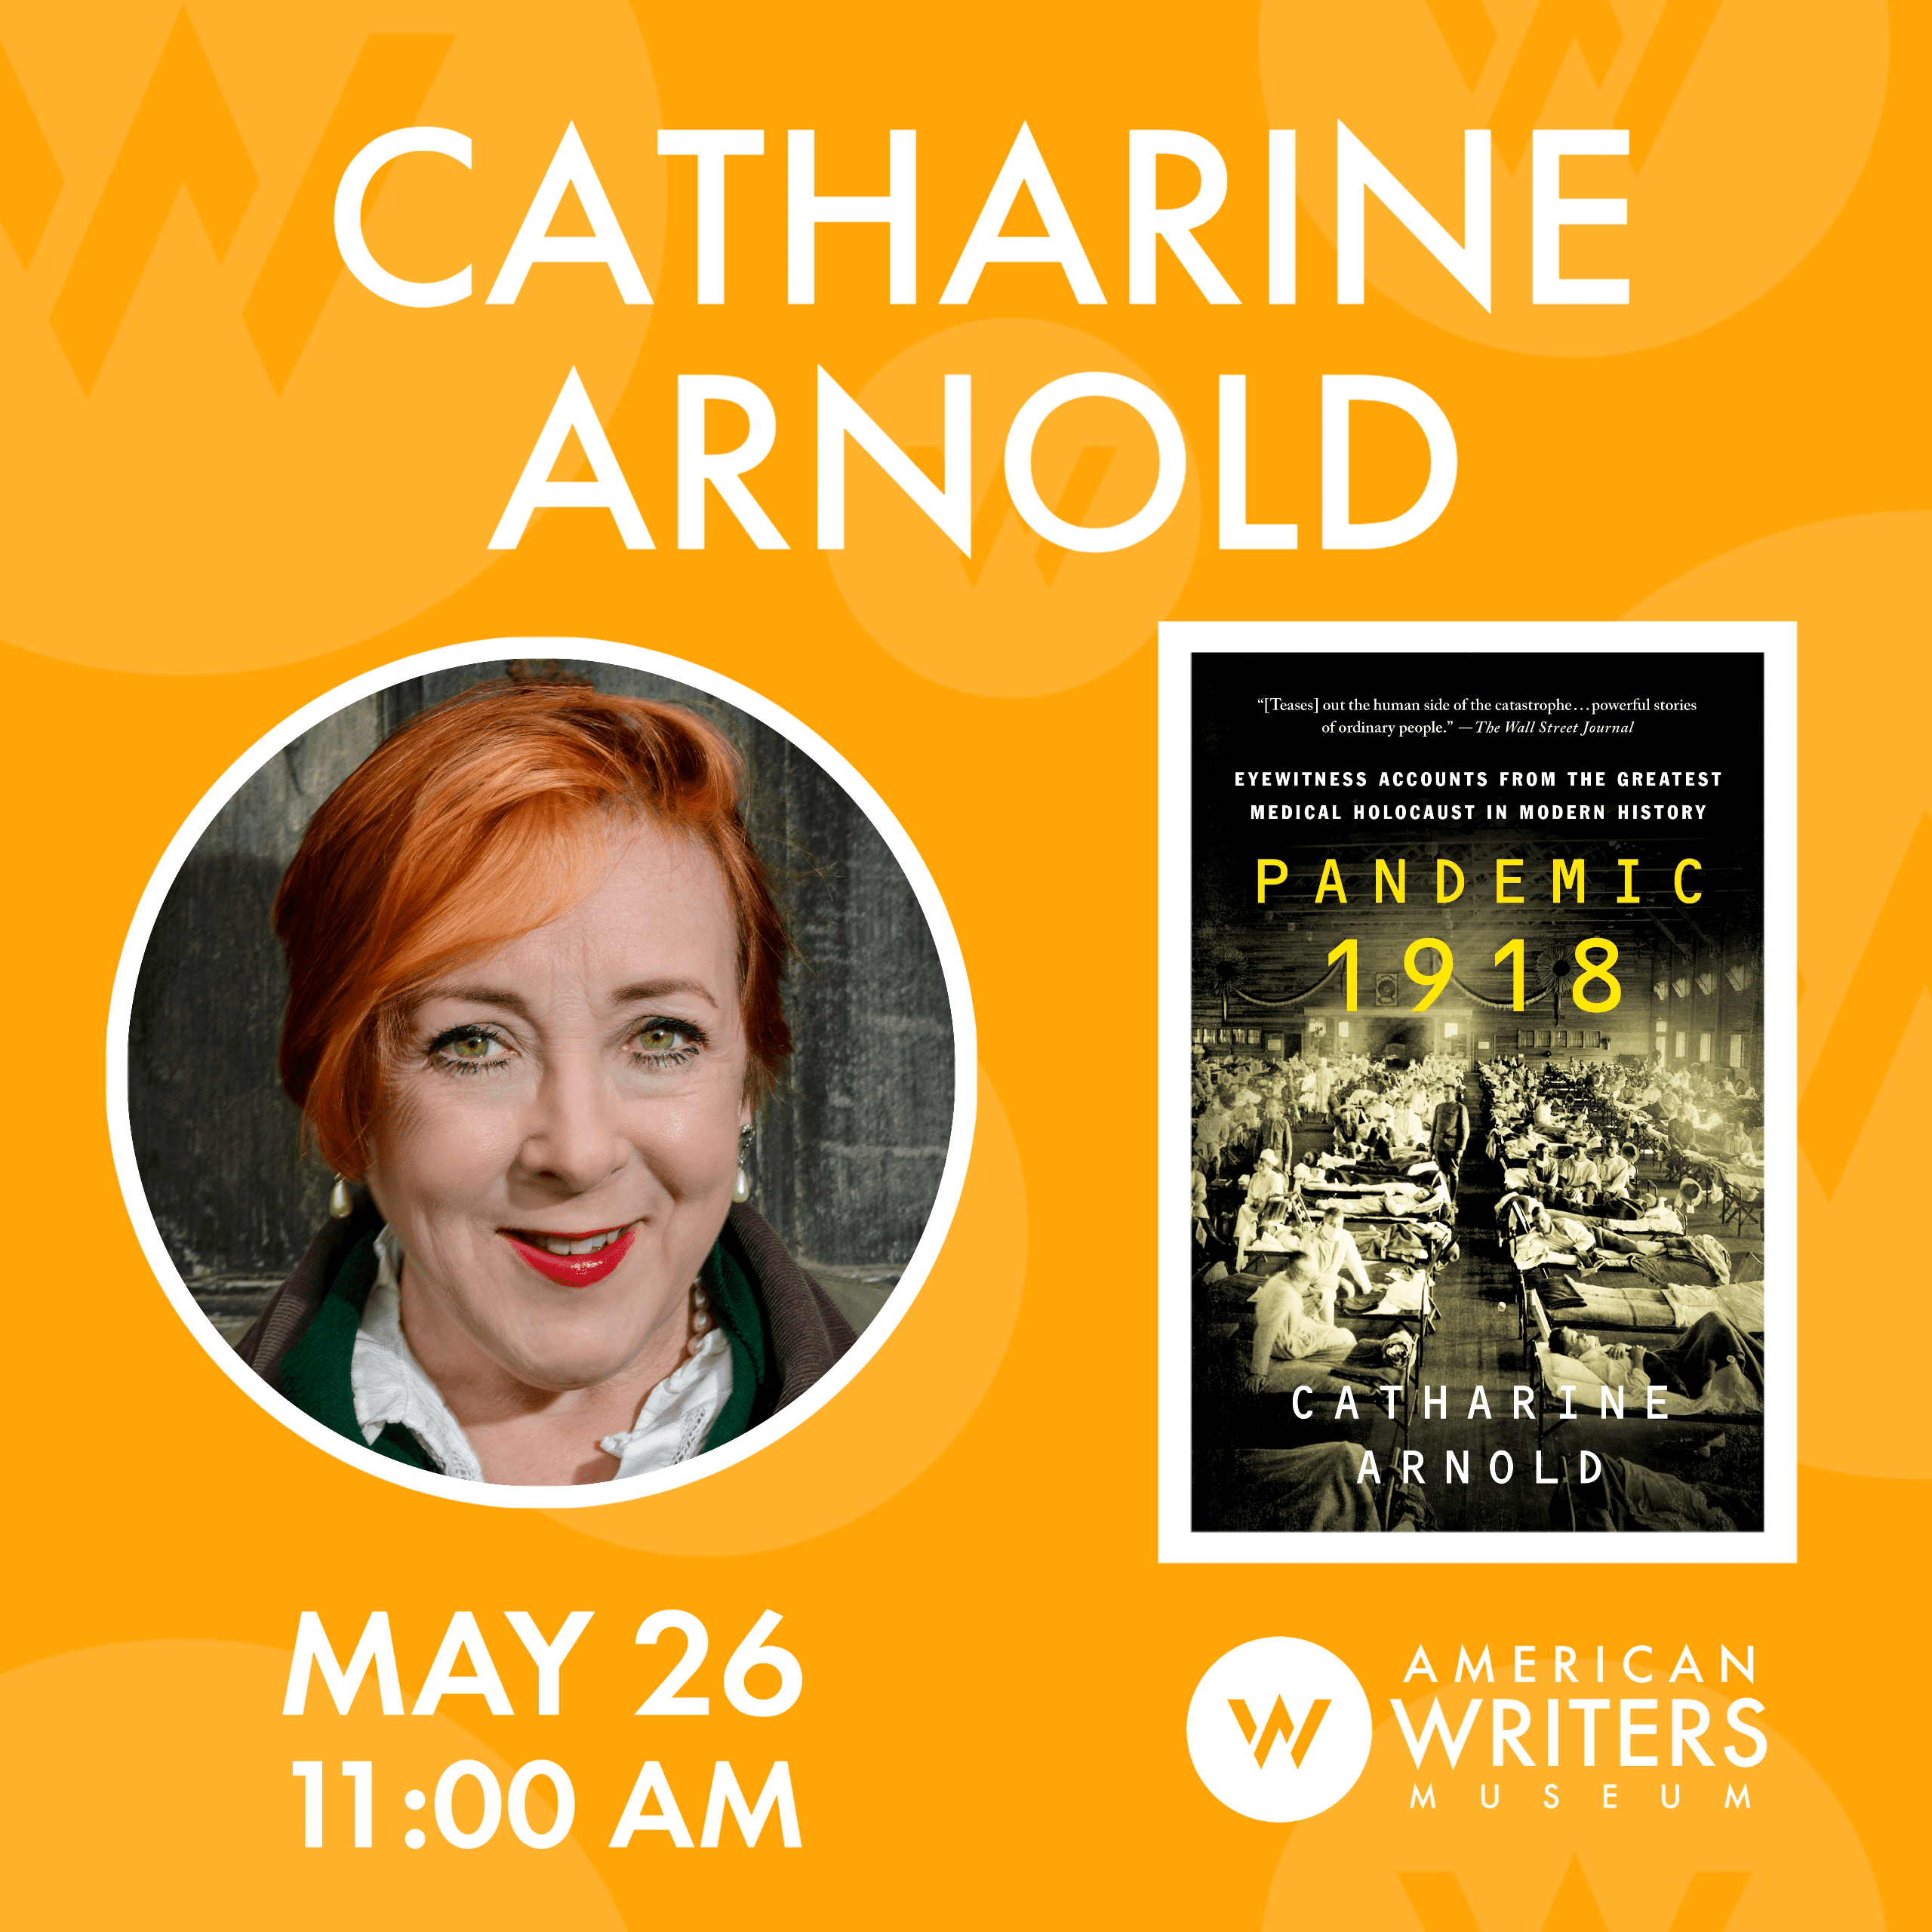 American Writers Museum presents a virtual webinar with author Catharine Arnold about her book Pandemic 1918